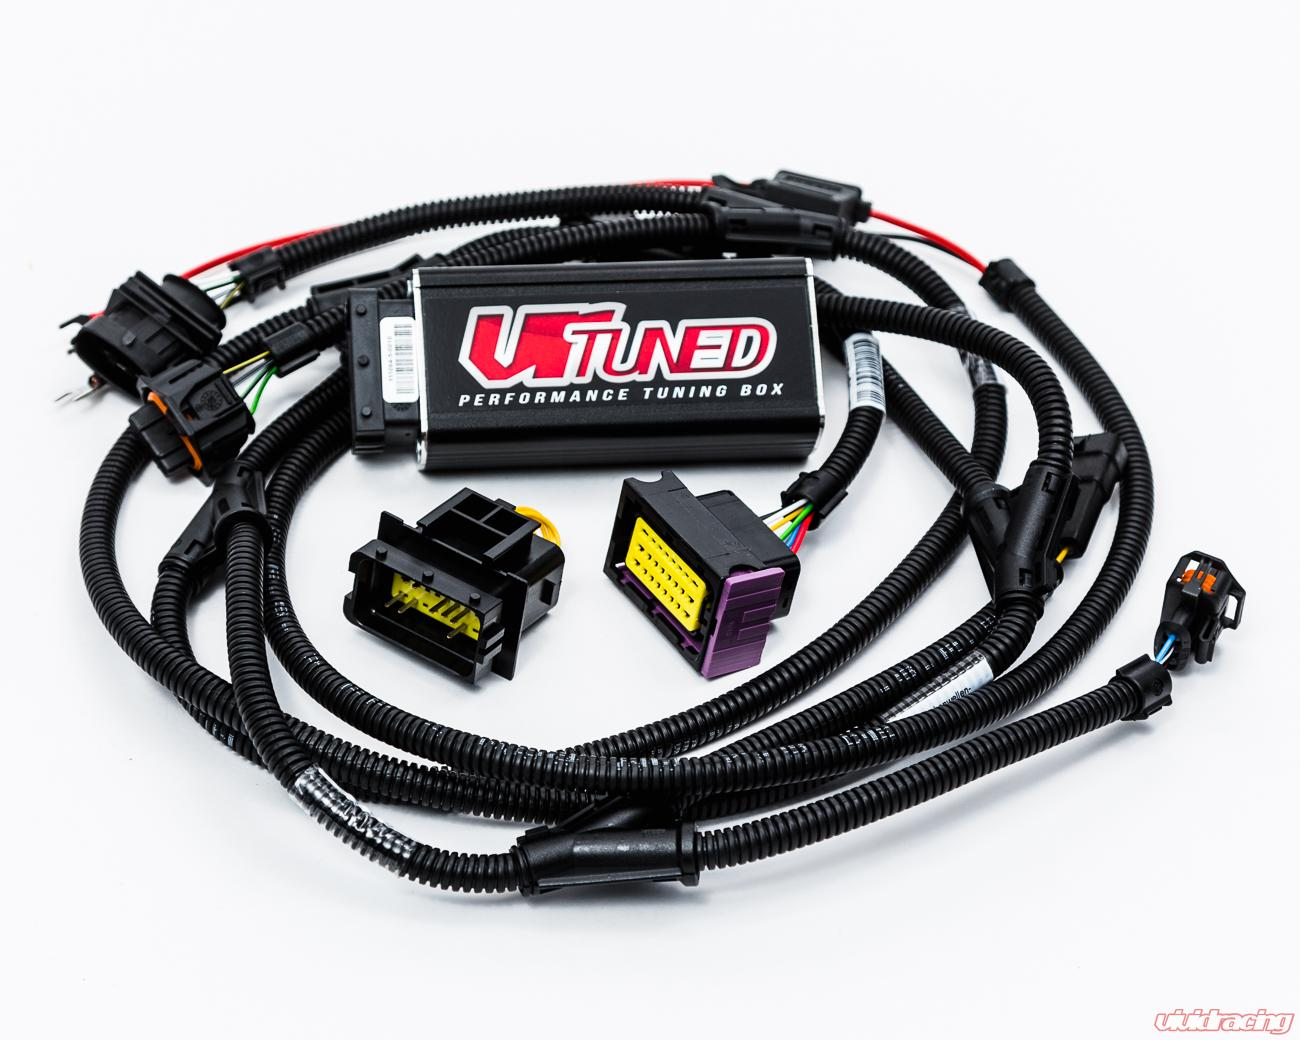 Vr Tuned Tuning Box Kit Can Am Maverick X3 Turbo 1951 Ferrari Wiring Harness Vrt 121116